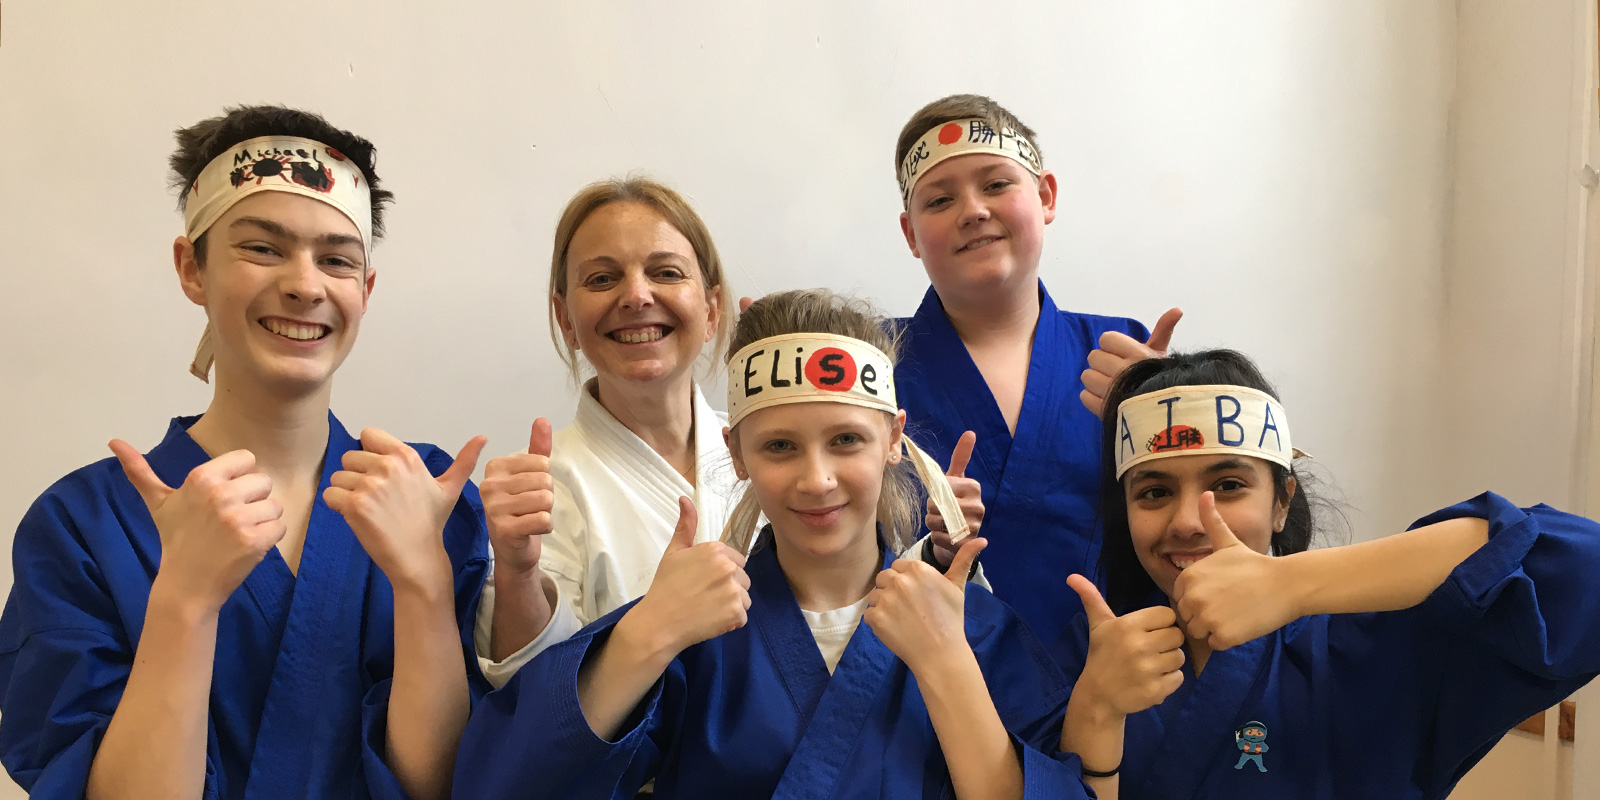 Cardiff karate party helpers and staff